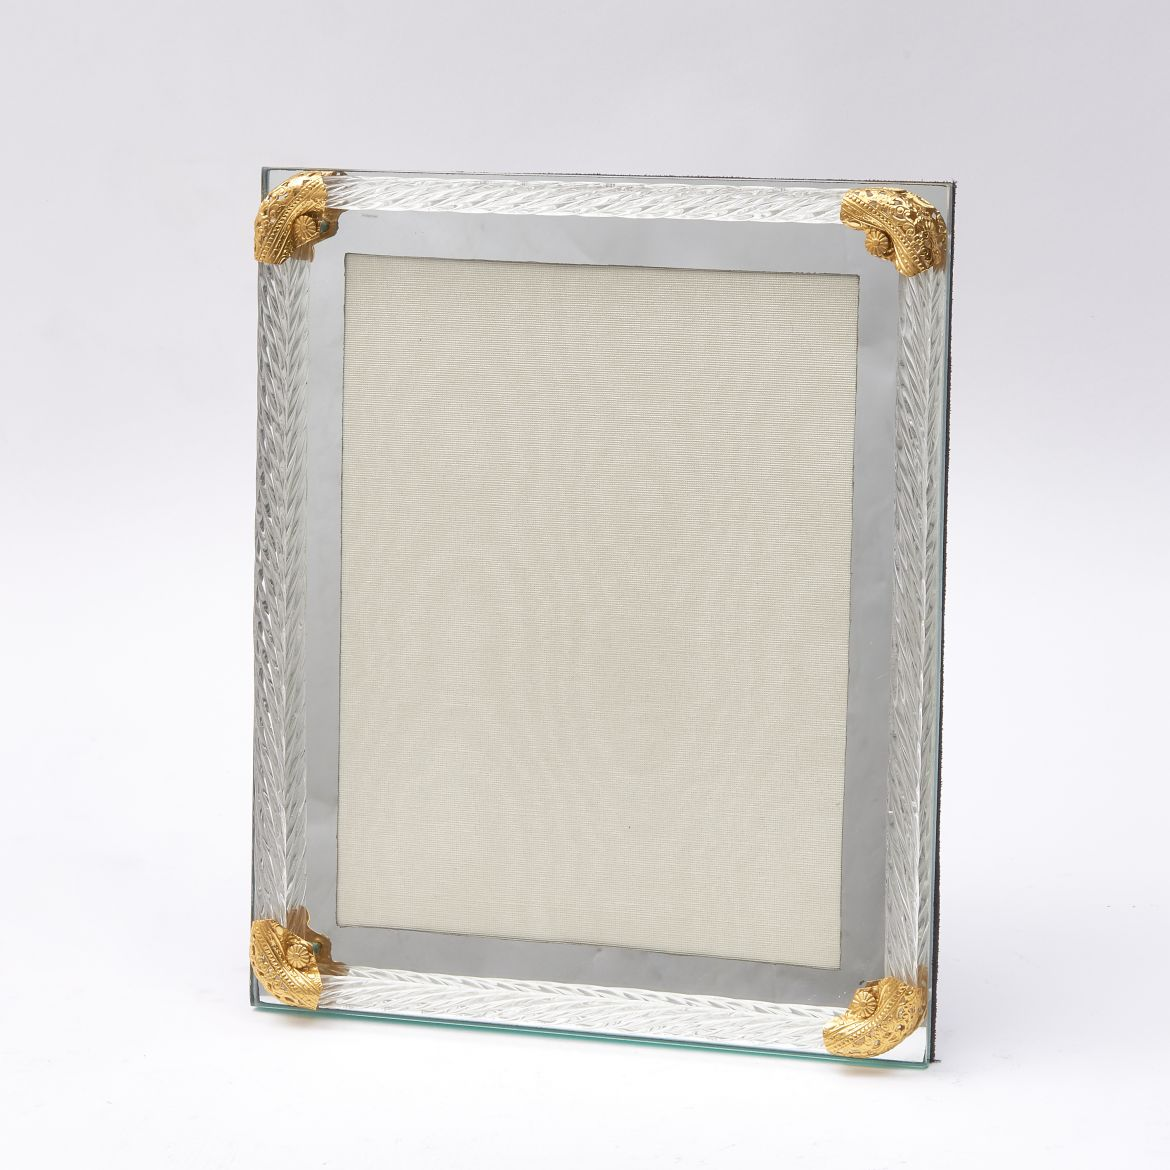 Italian Mirrored Photo Frame